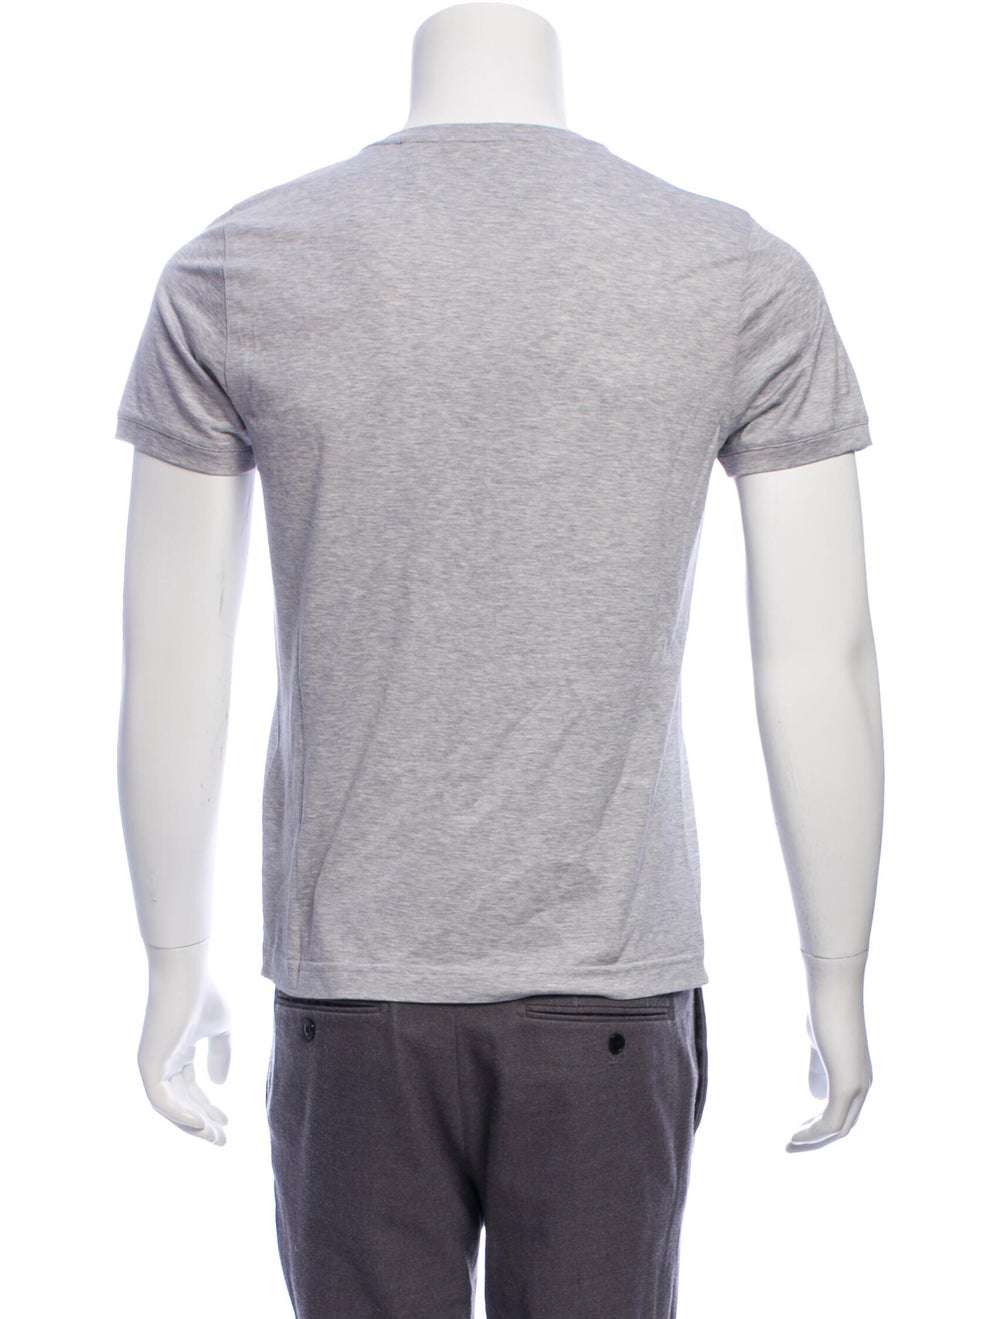 Fendi Leather-Accented Monster T-Shirt w/ Tags gr… - image 3